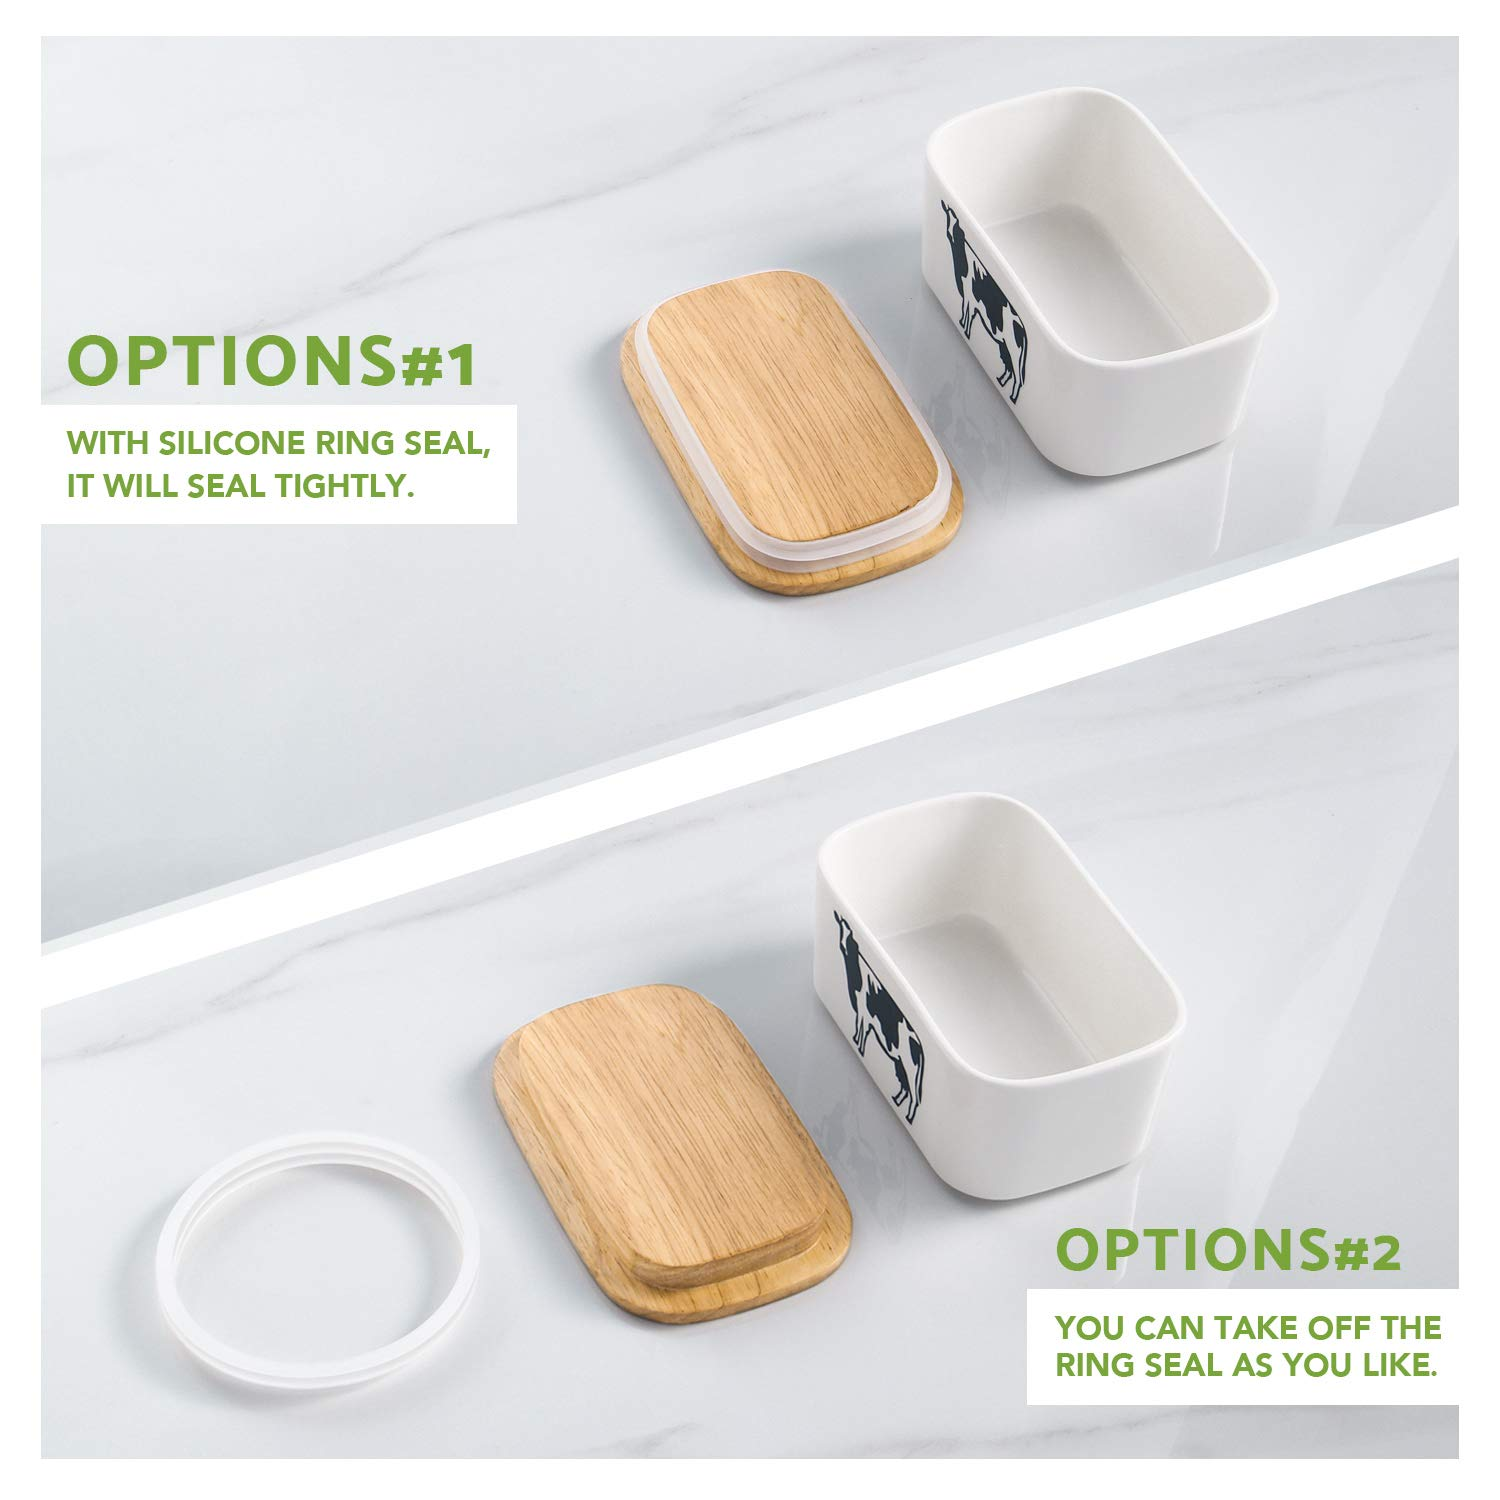 DOWAN Porcelain Butter Dish - Airtight Butter Keeper With Wooden Lid To Keep Butter Fresh - Large Butter Container Holds Up to 2 Sticks of Butter by DOWAN (Image #5)